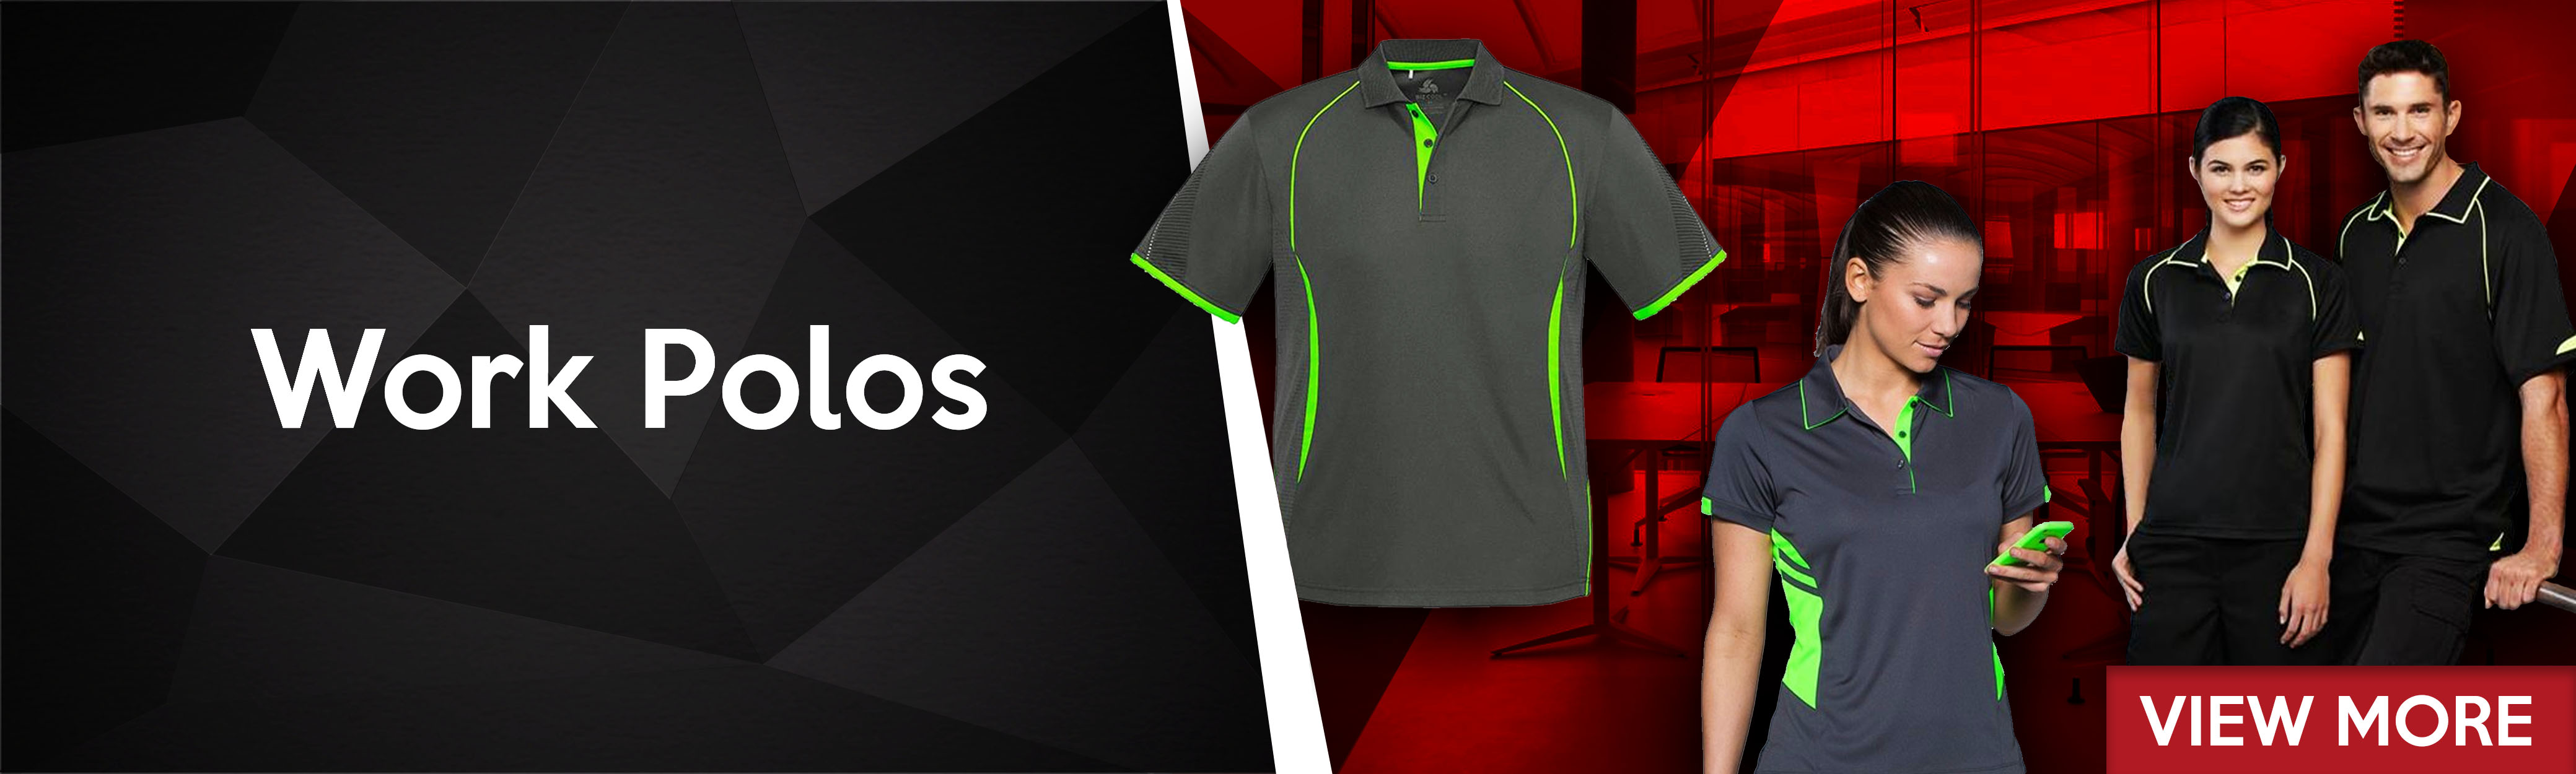 Onlineworkwear provide a comprehensive range of Work Polos, Office Wear & Work Shirts.